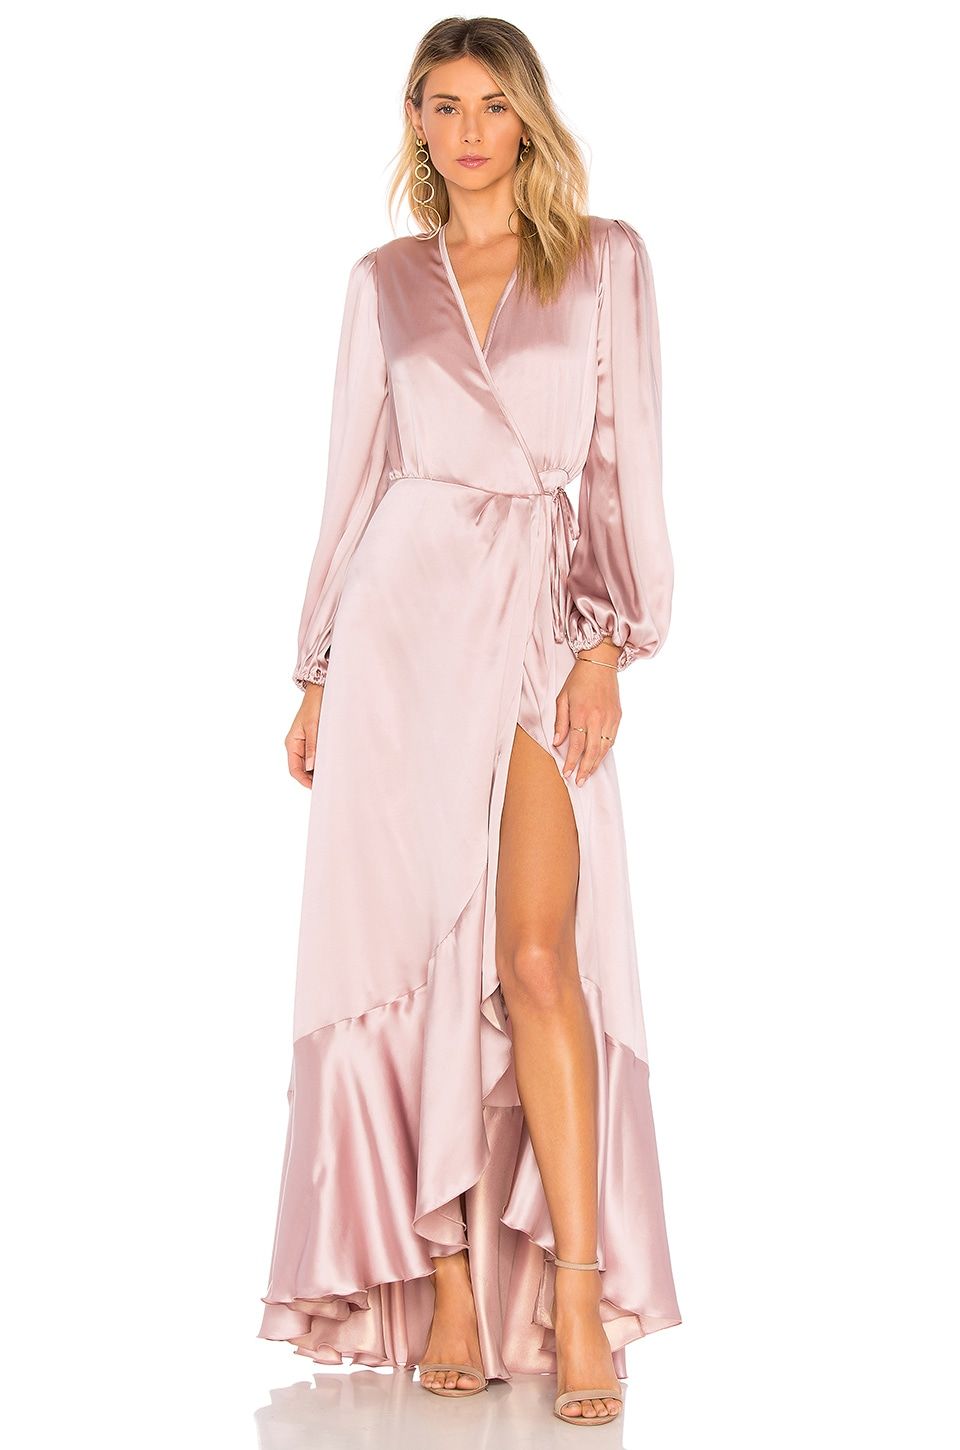 OUD Soho Long Dress in Light Pink | REVOLVE